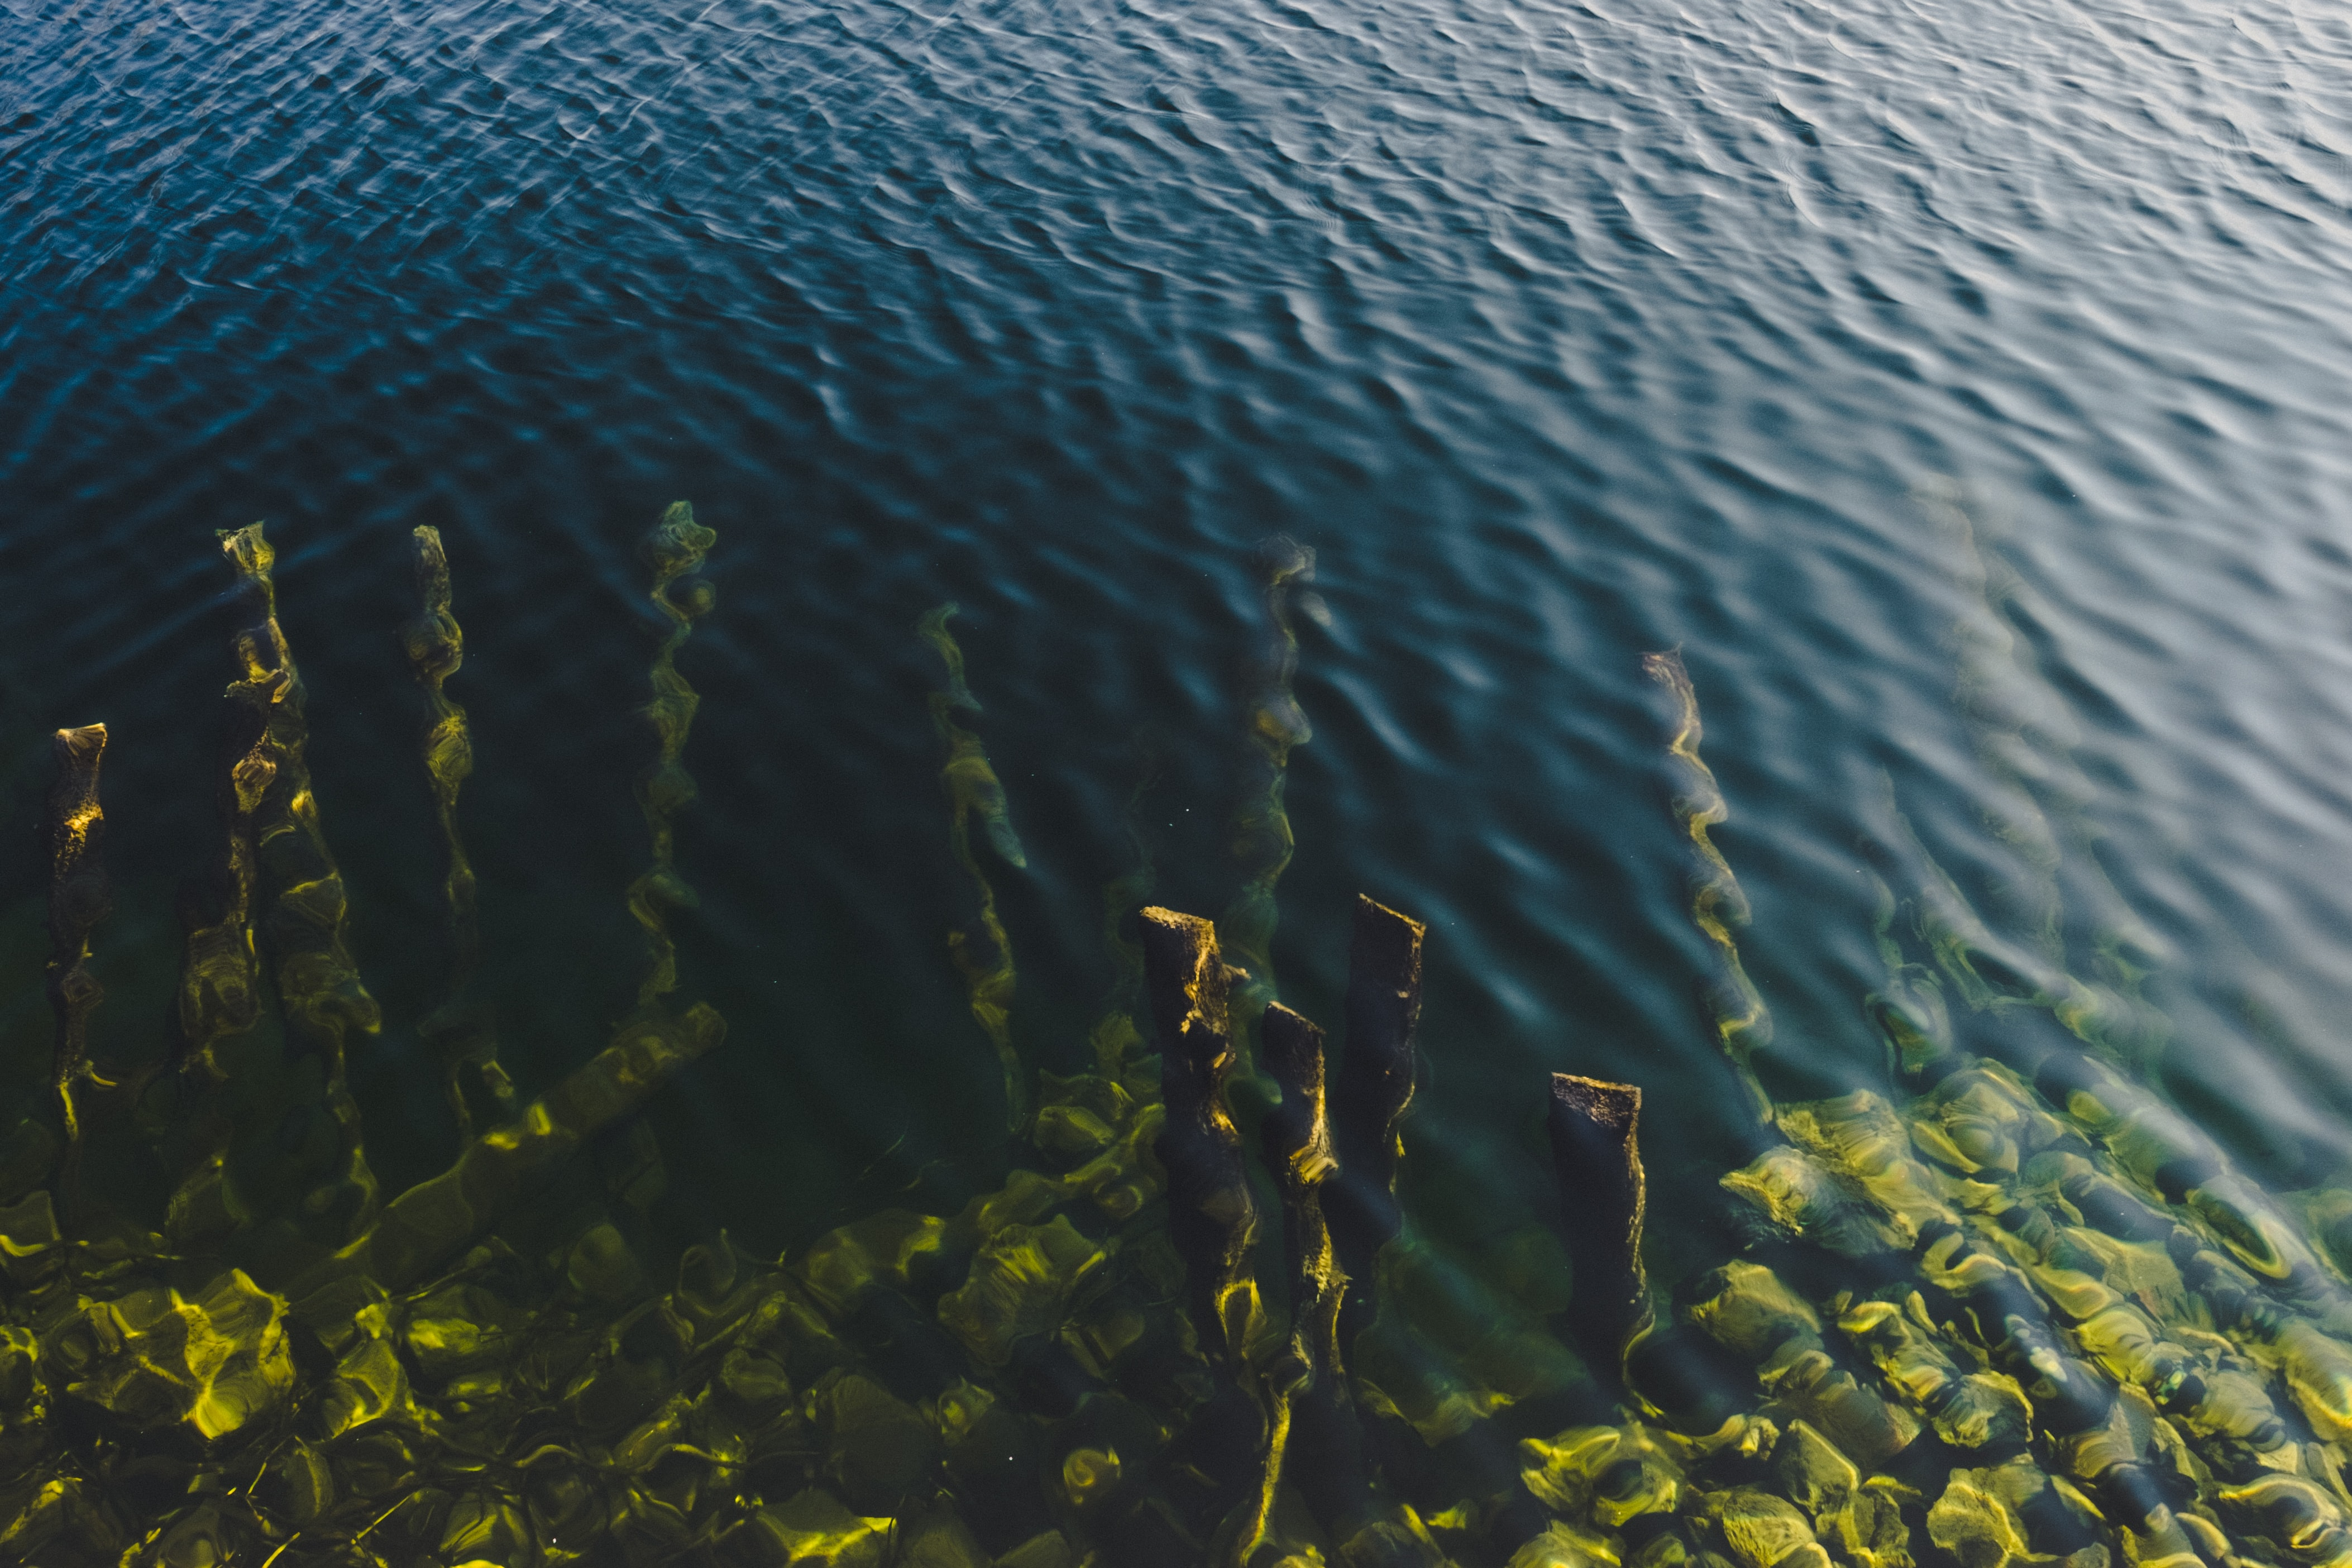 aerial photograph of body of water